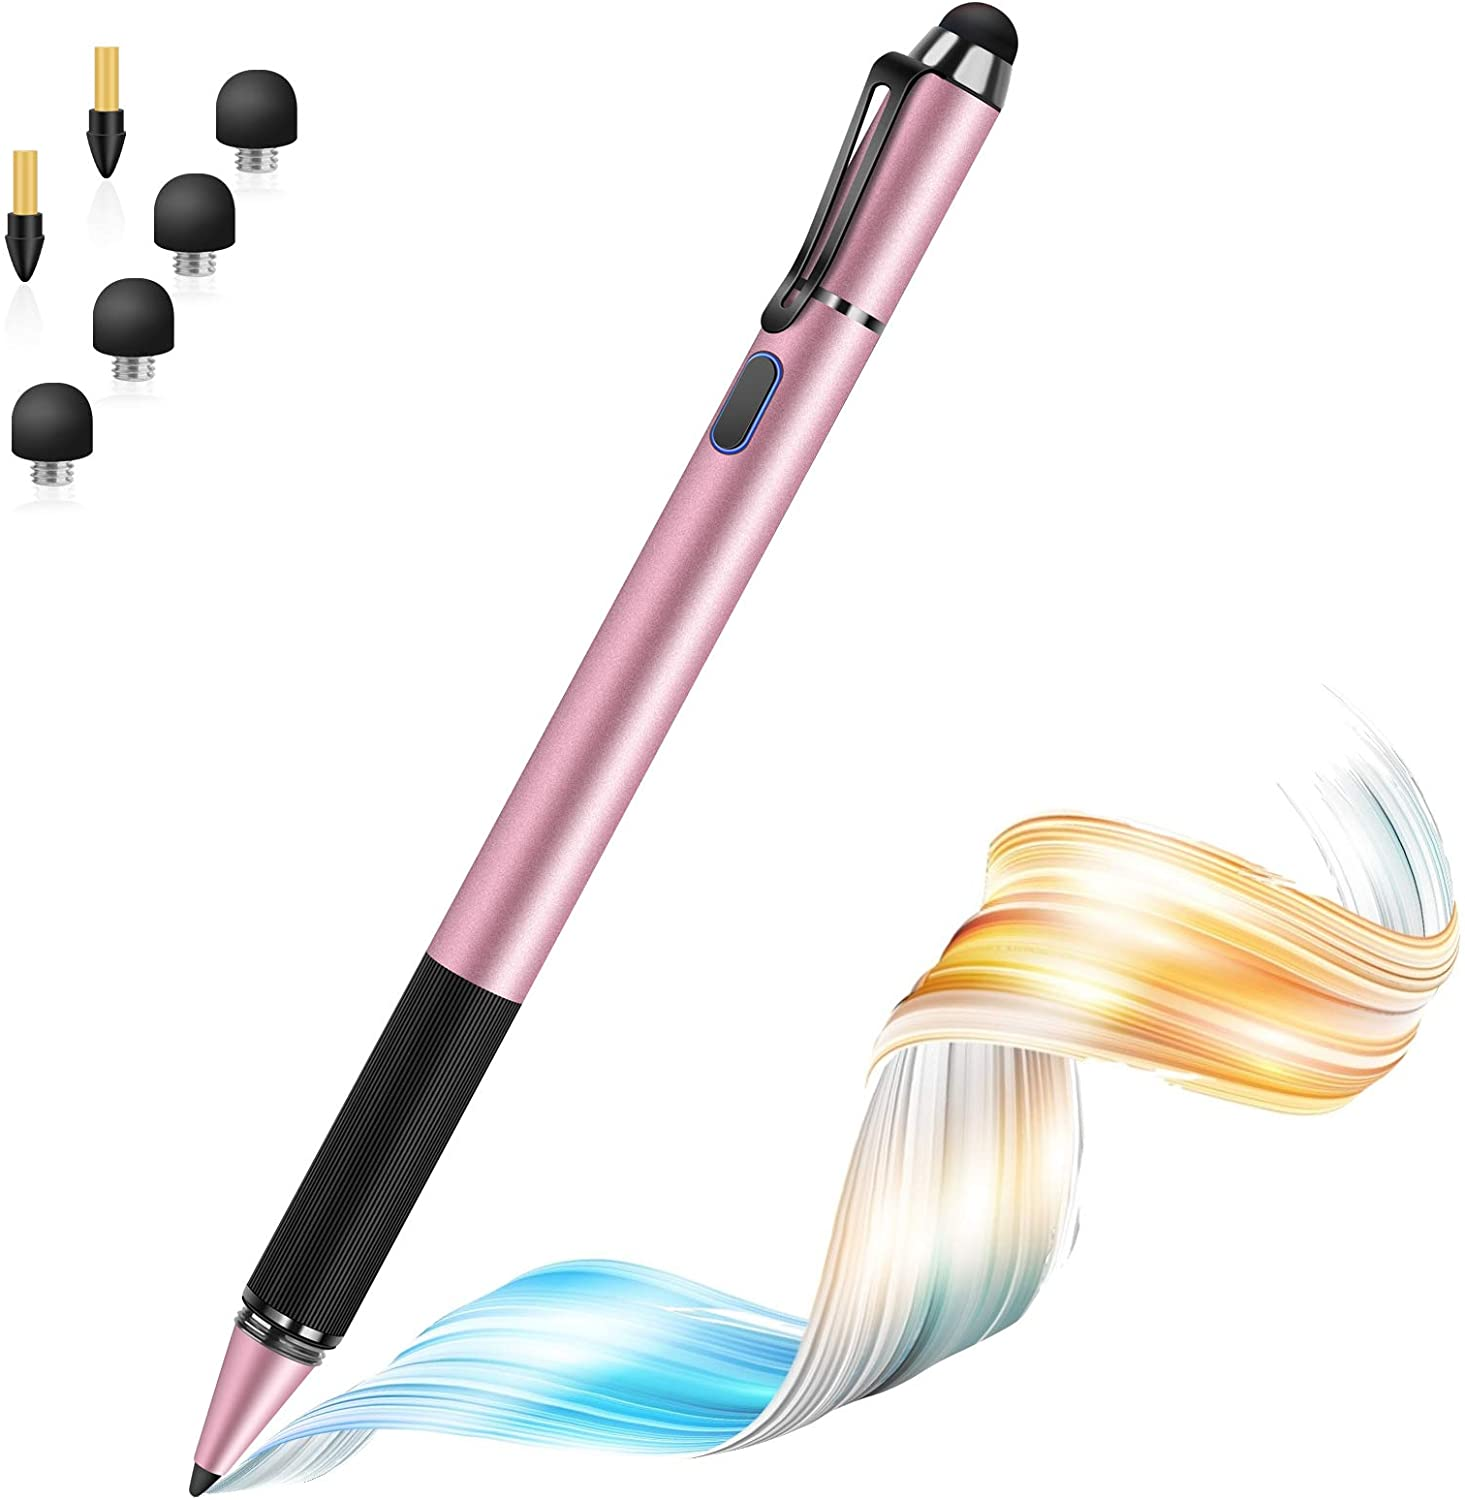 2-in-1 Stylus with Palm Rejection